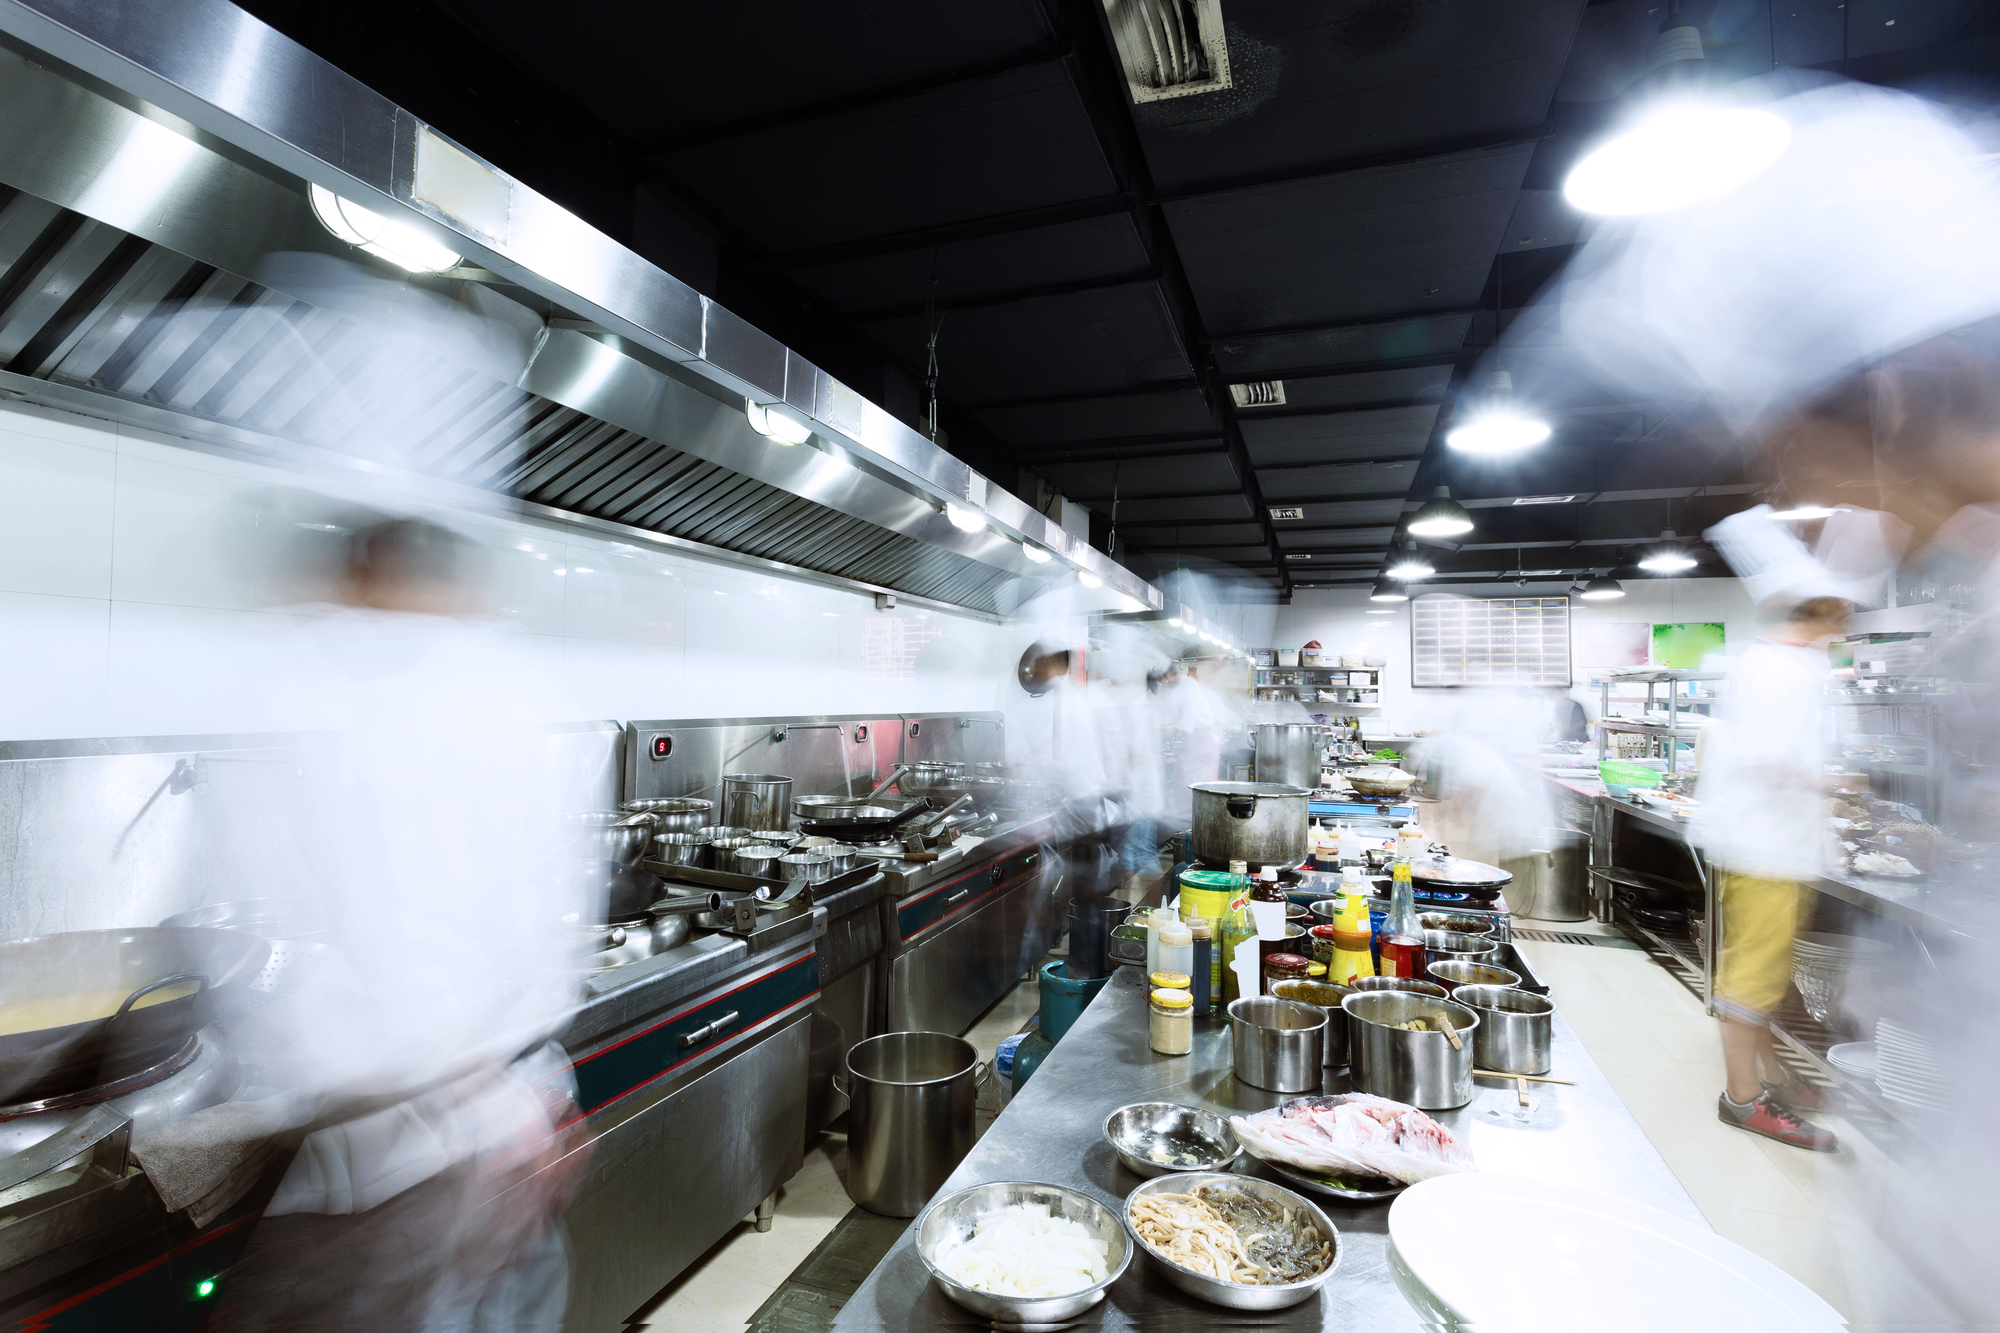 9 Ways to Make Your Restaurant Kitchen Run More Efficiently